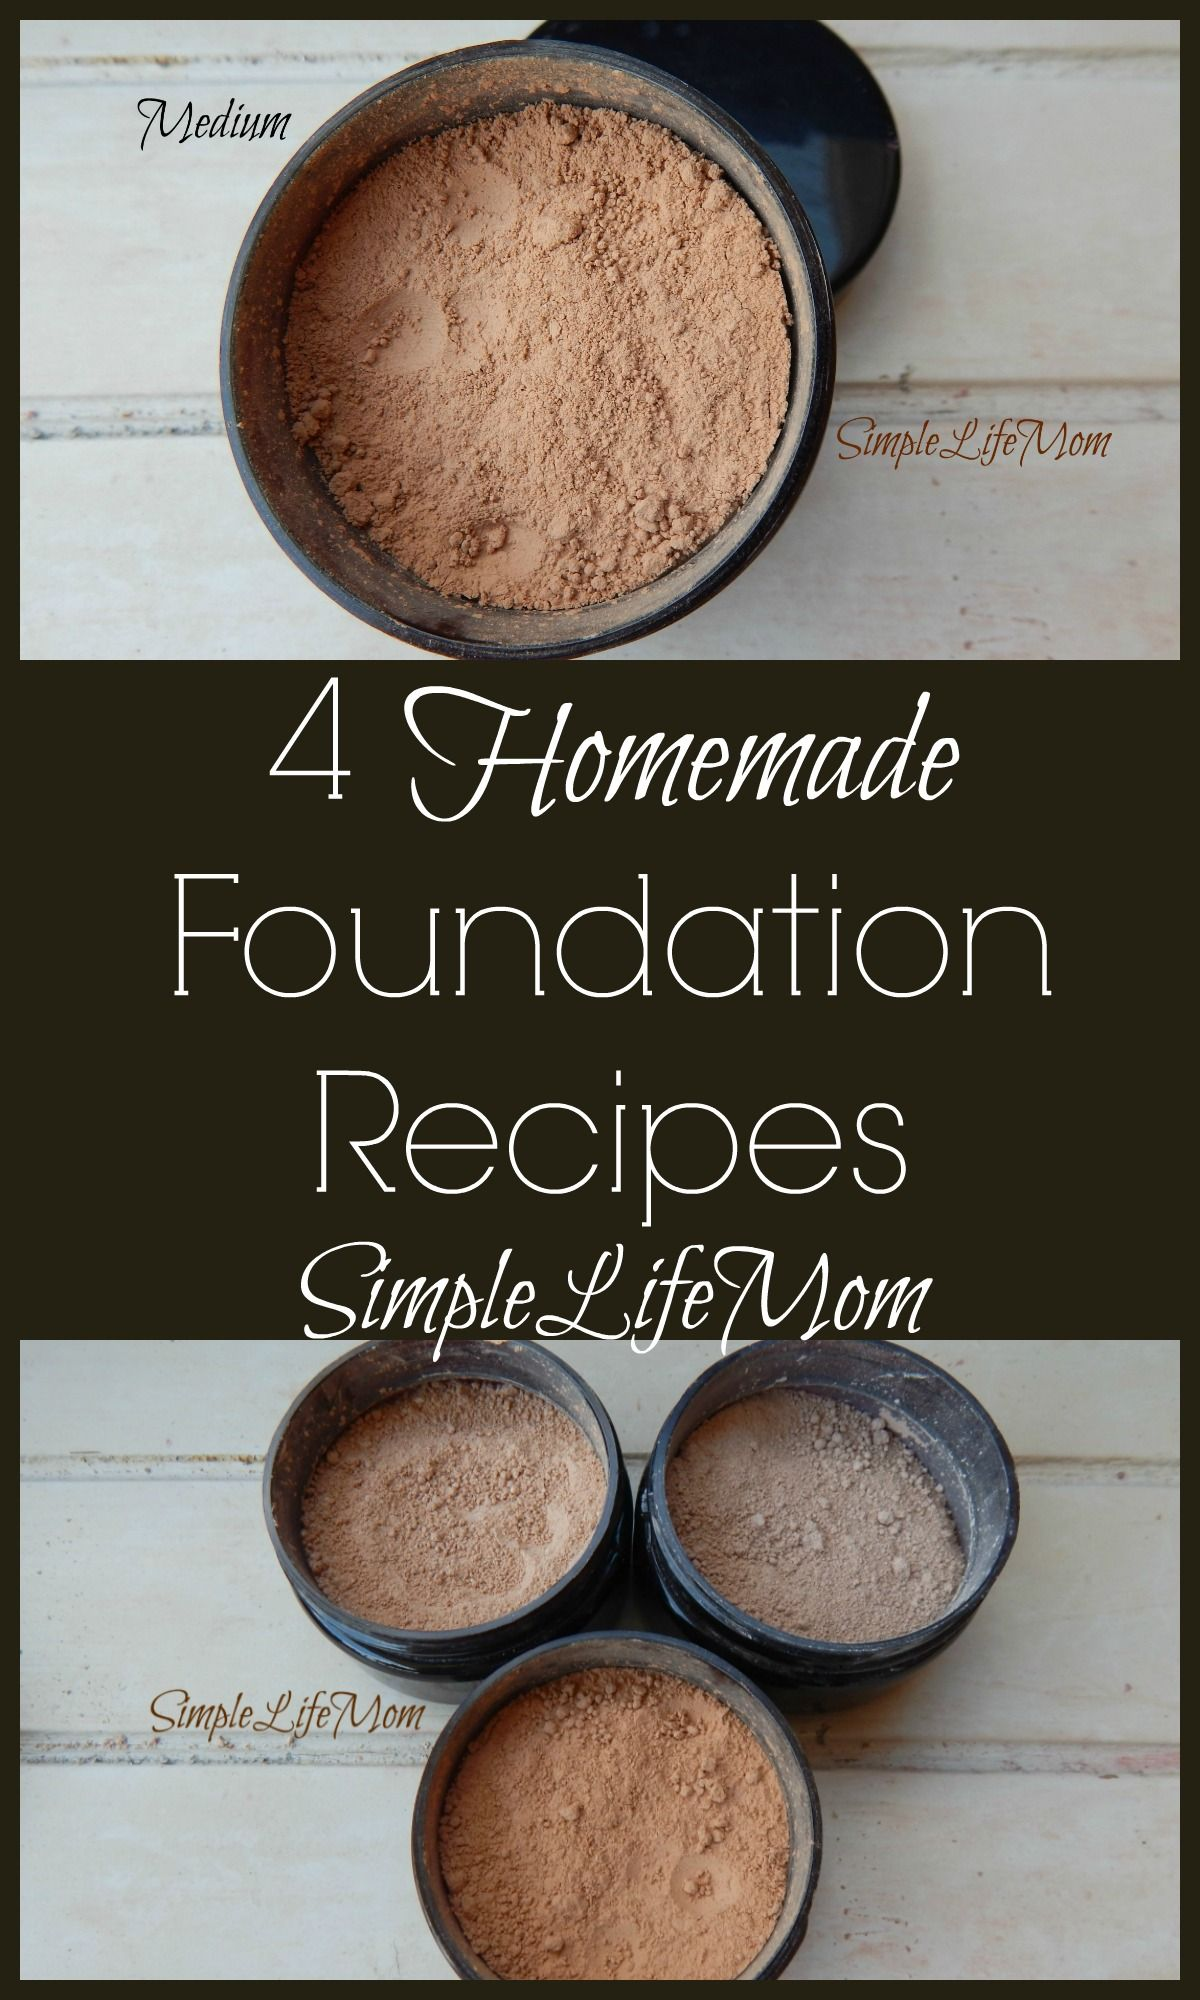 Homemade Powder Foundation Recipe Using Natural Ingredients Naturally Handcrafted Powder Foundation Homemade Foundation Homemade